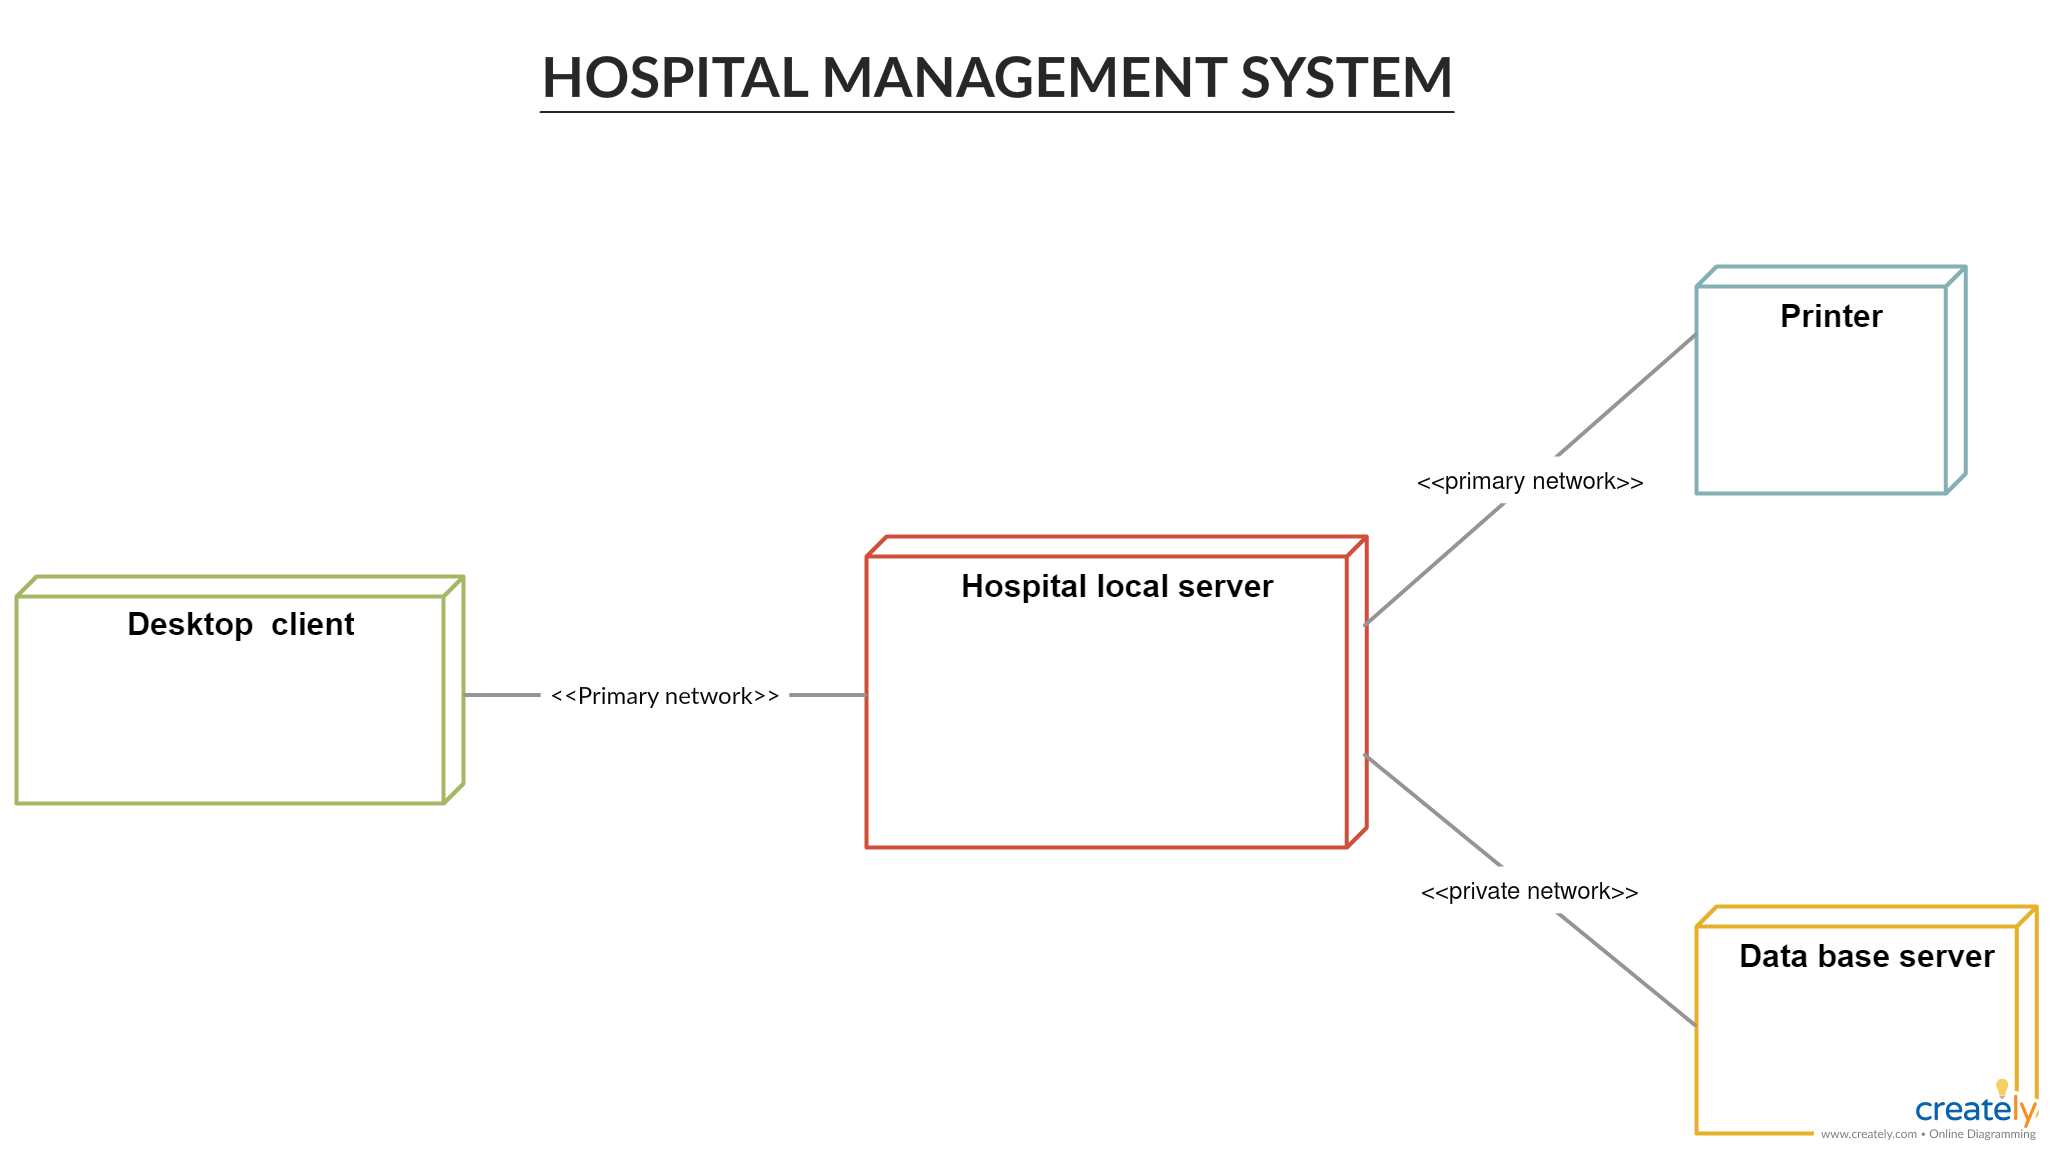 Deployment Diagram for Hospital Management System - You can edit